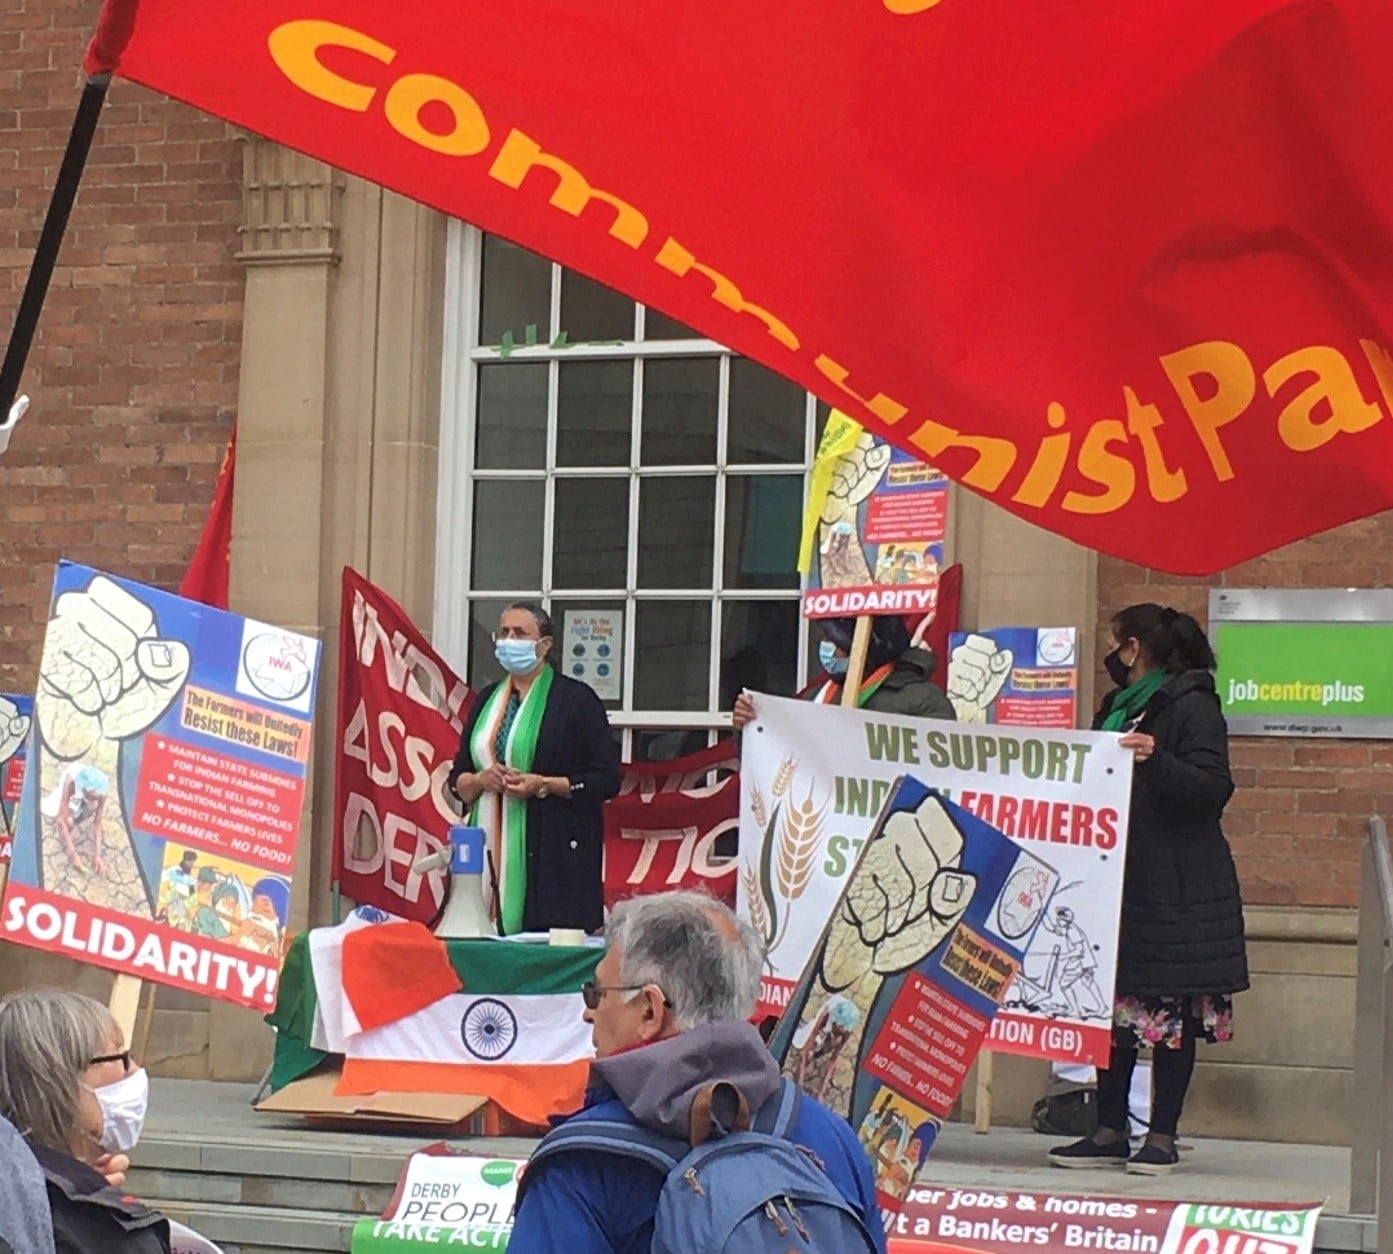 IWA Rally in Derby ; Solidarity with Indian Farmers and Farm Workers